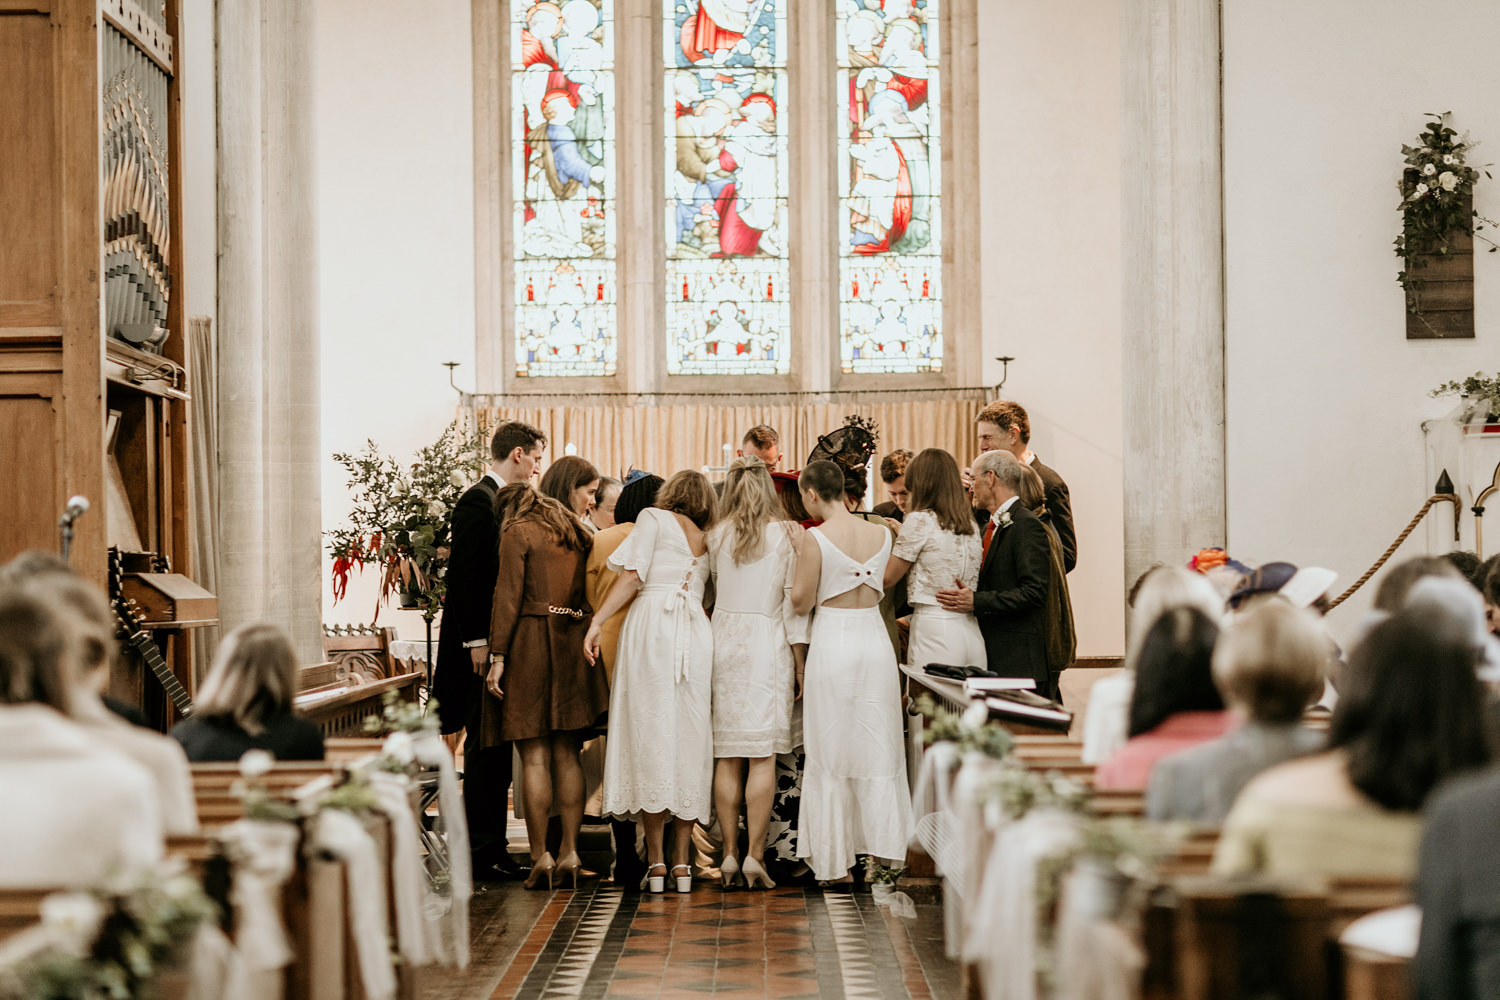 bridesmaids and friends praying for the bride and groom during their church wedding ceremony Stroud